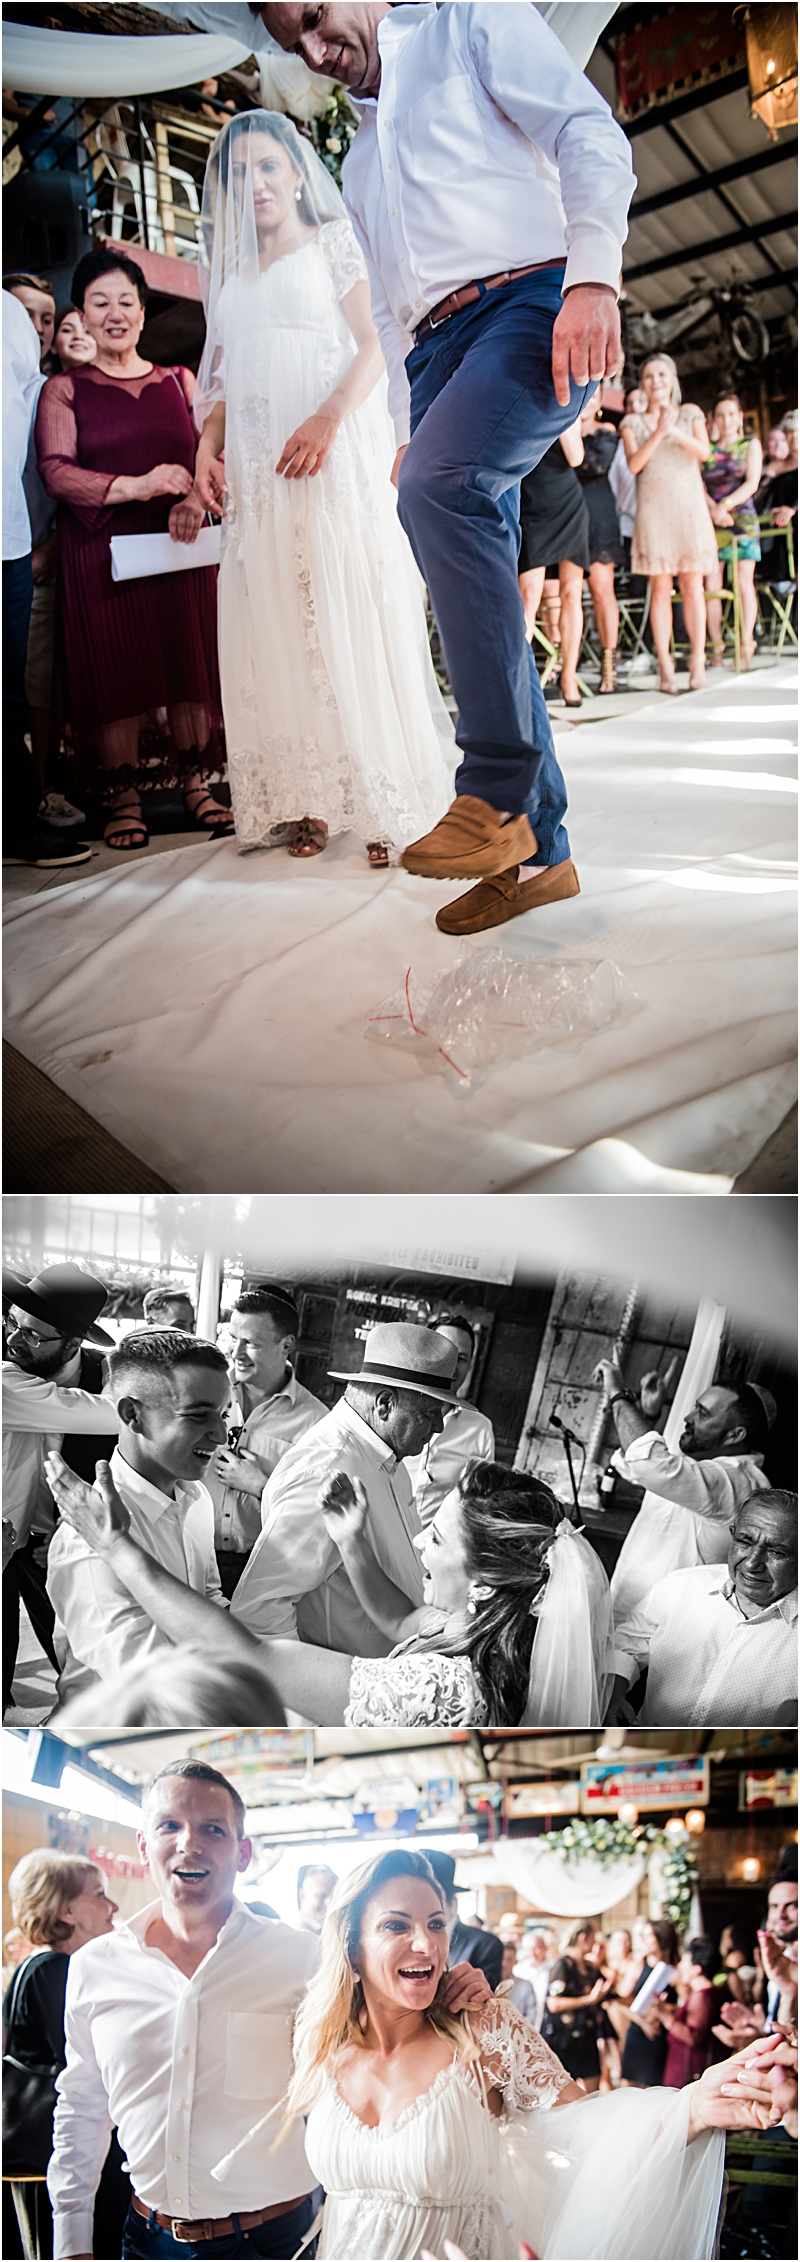 Best wedding photographer - AlexanderSmith_4842.jpg